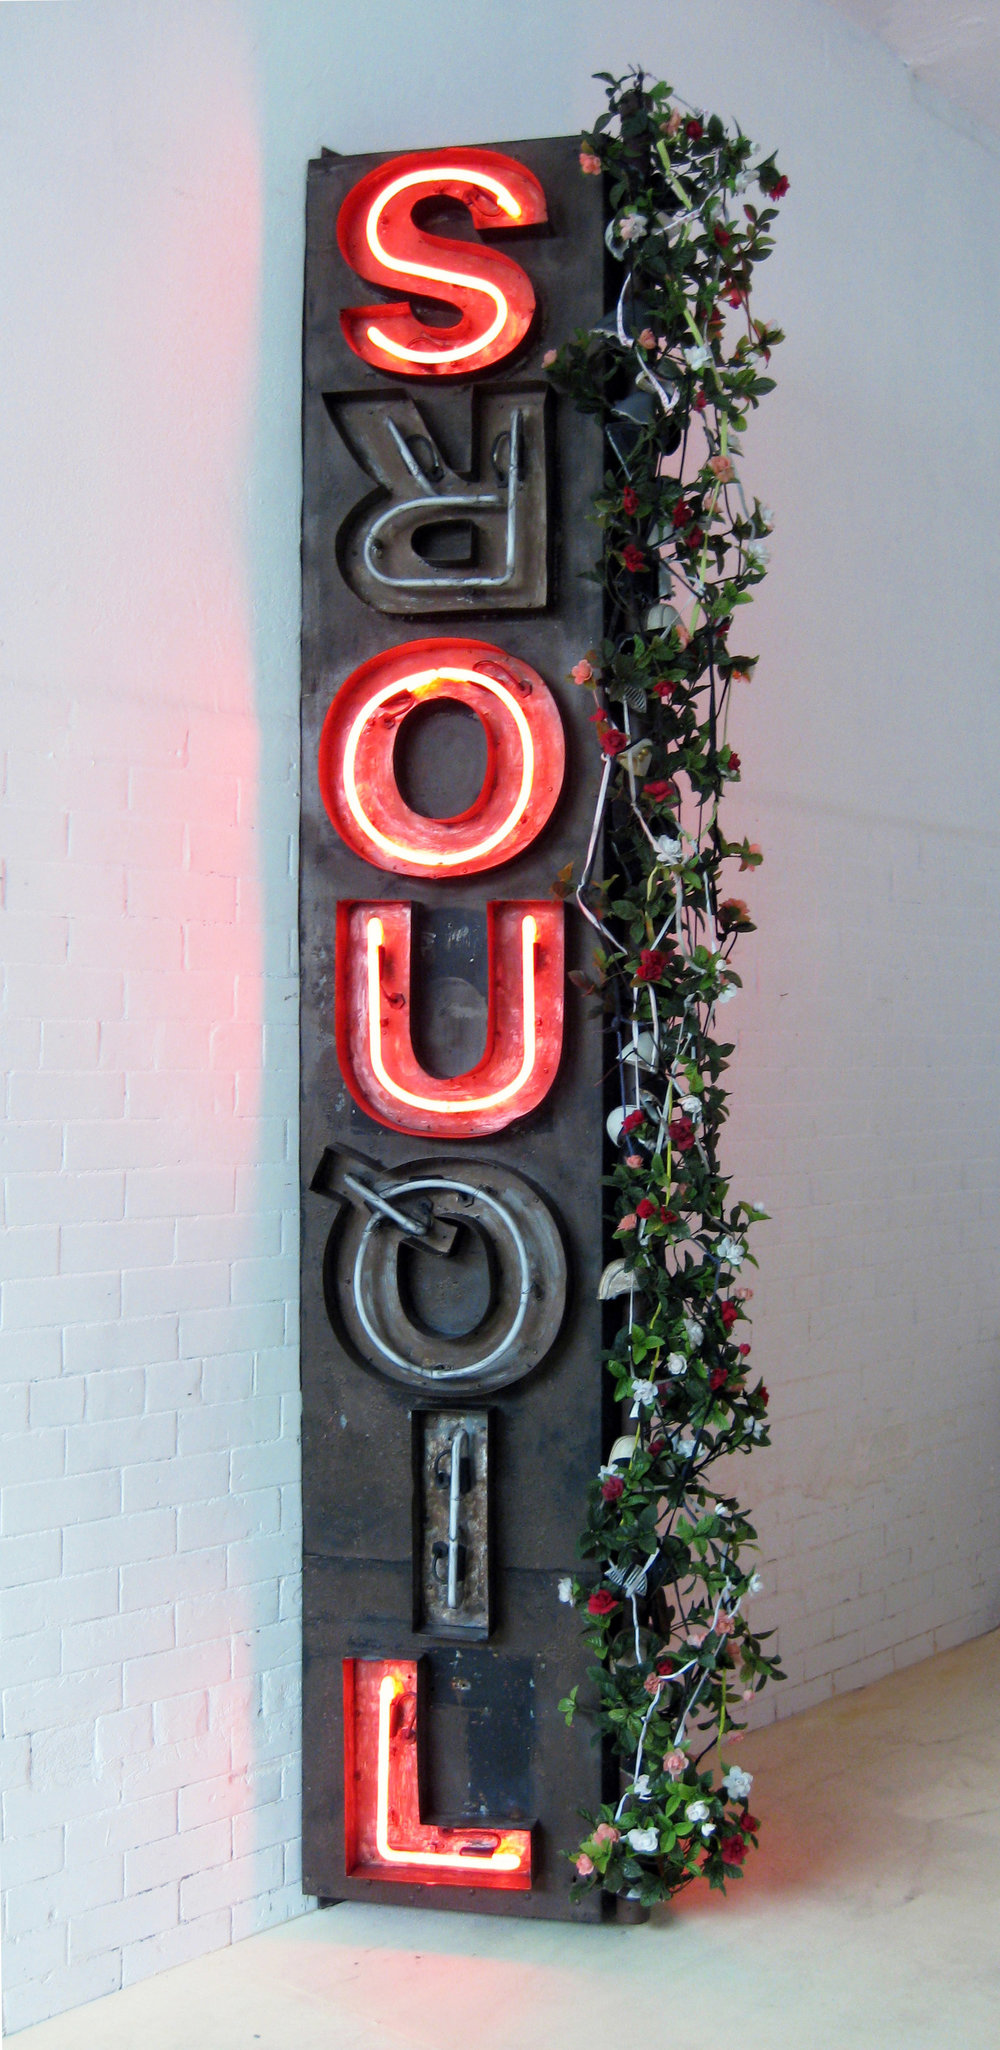 West Liquorsoul  2009, Metal and neon sign, wood with artificial flowers, pvc tubing, shoelaces and shoe tips  124 x 34 x 28 inches